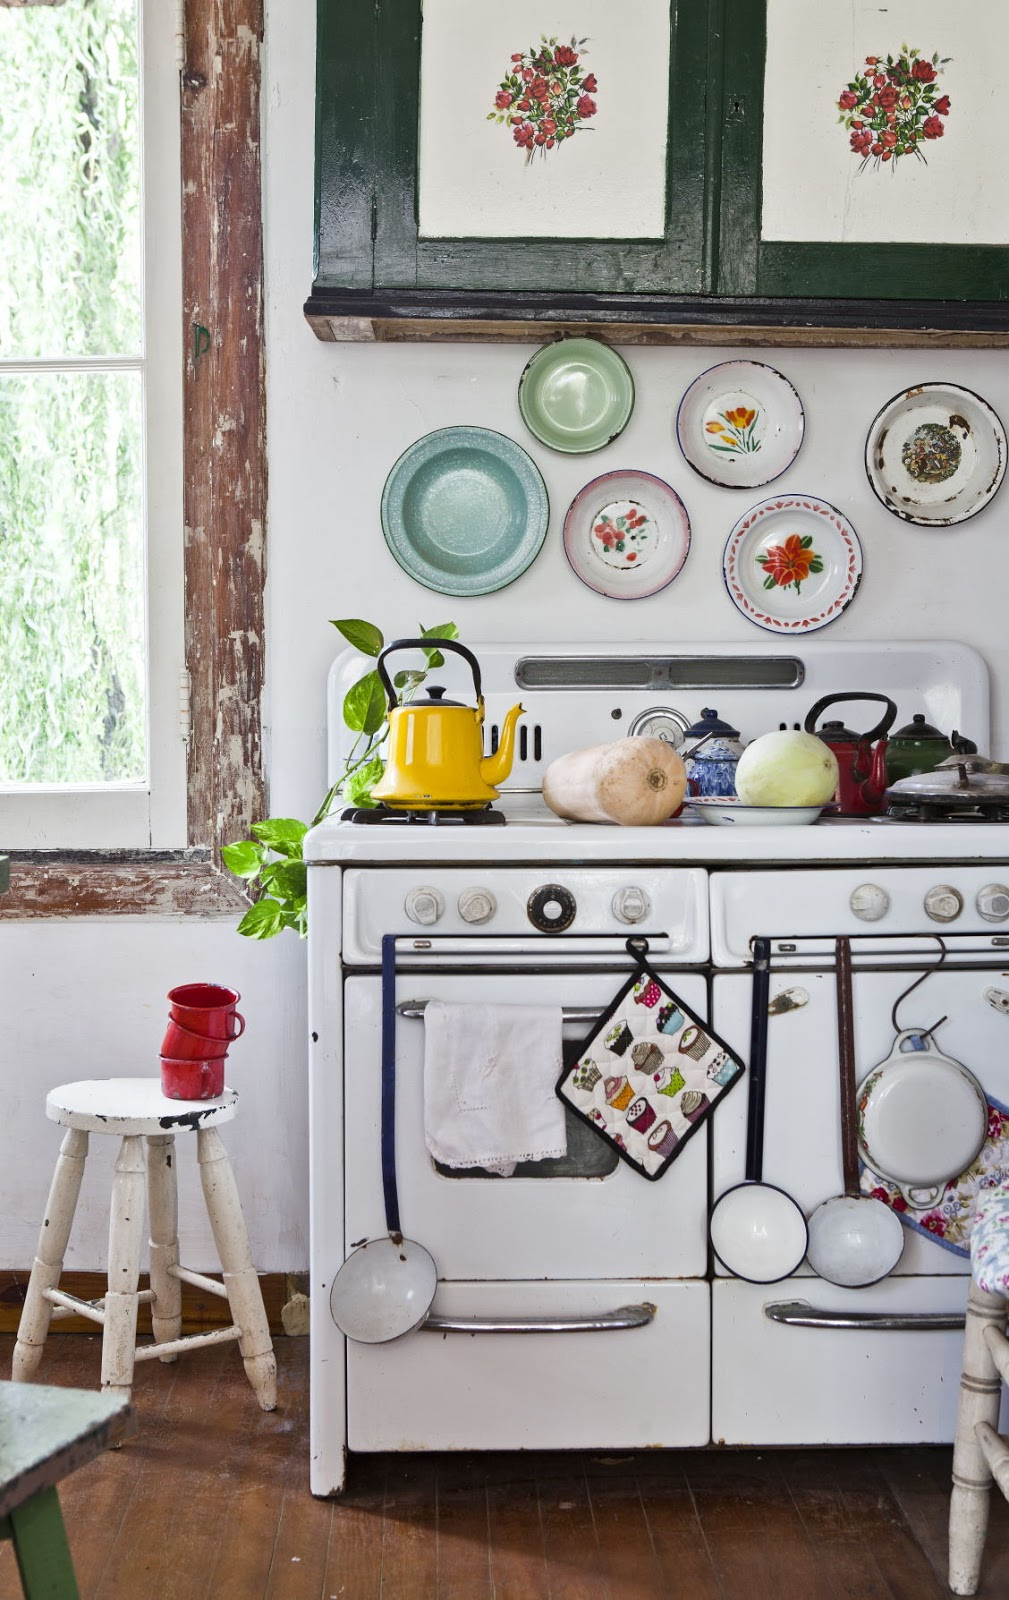 Cottage Kitchens On Pinterest Country Kitchens Vintage Kitchen And Aga